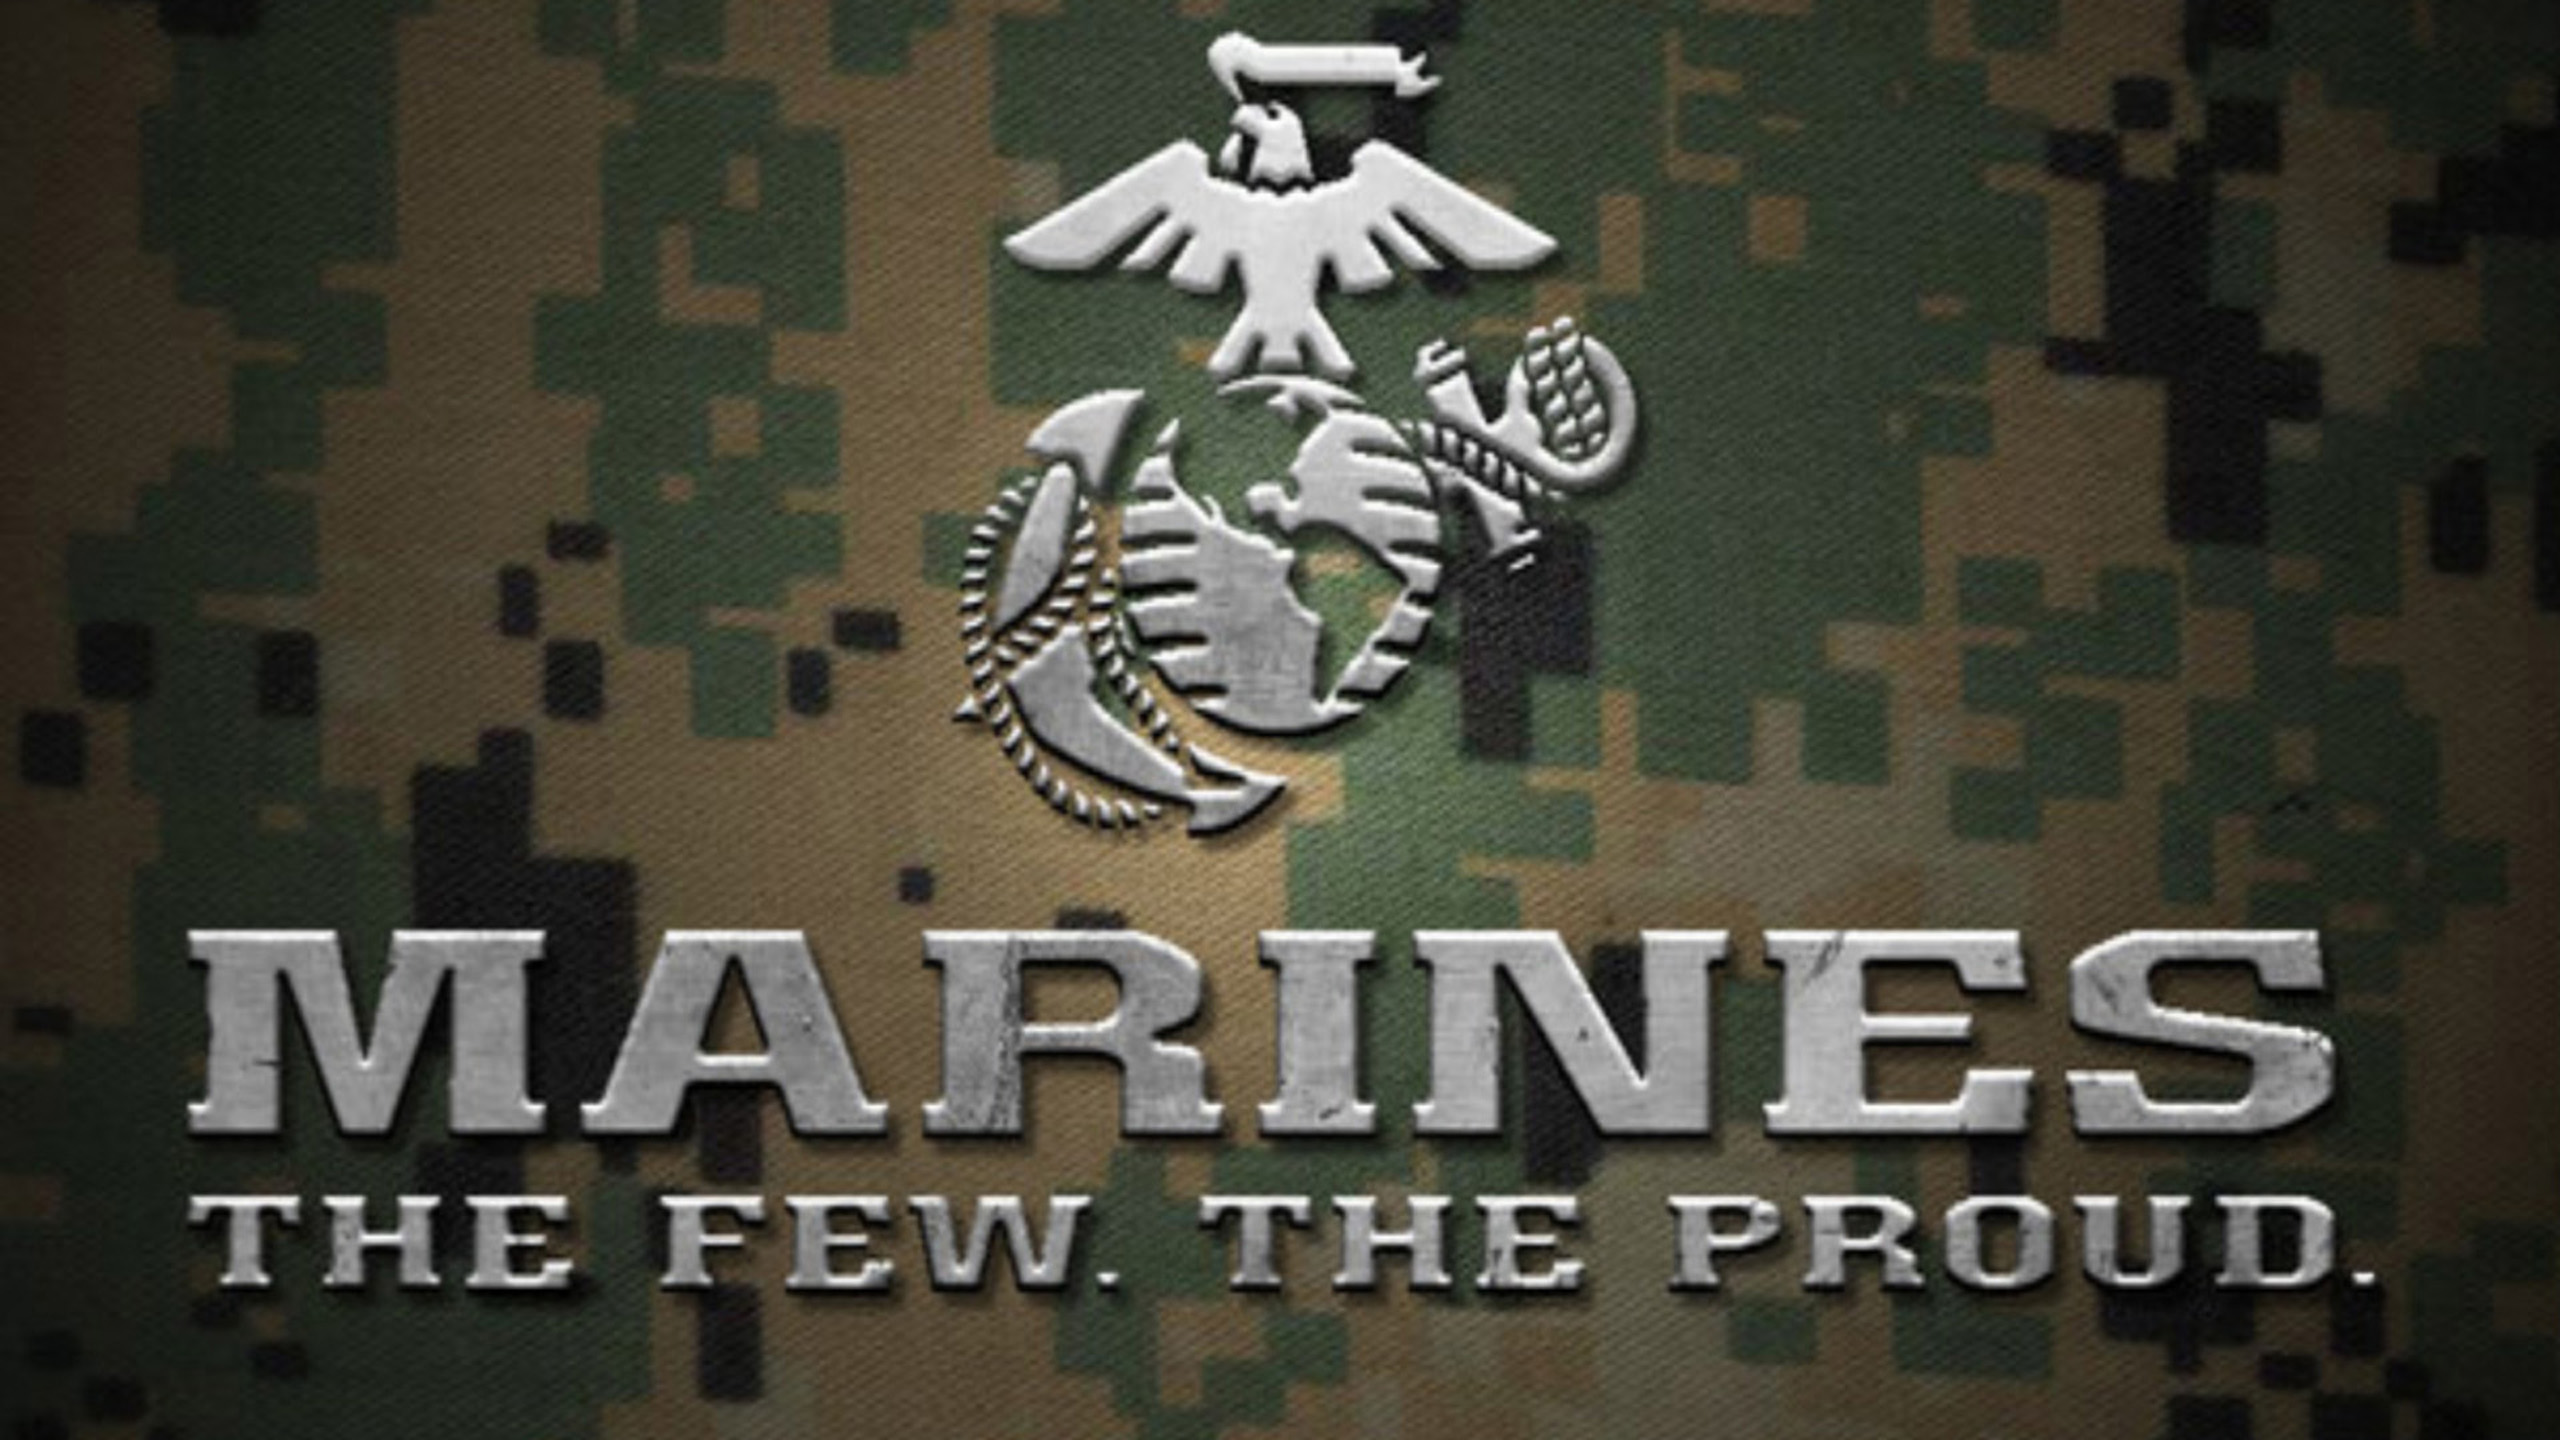 Beautiful Wallpaper Logo Usmc - Marine-Wallpaper-029  Perfect Image Reference_35270.jpg